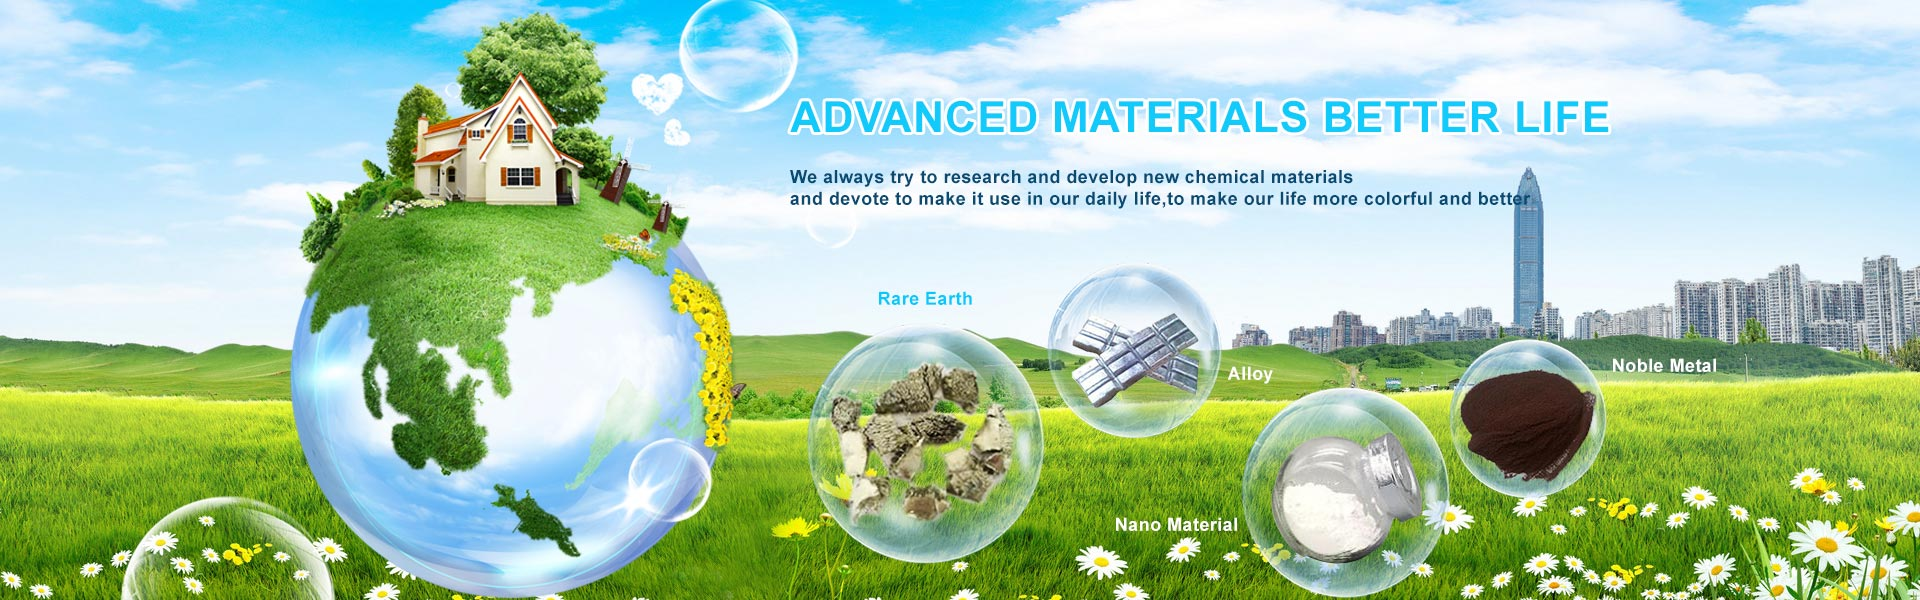 ADVANCED MATERIALS BETTER LIFE